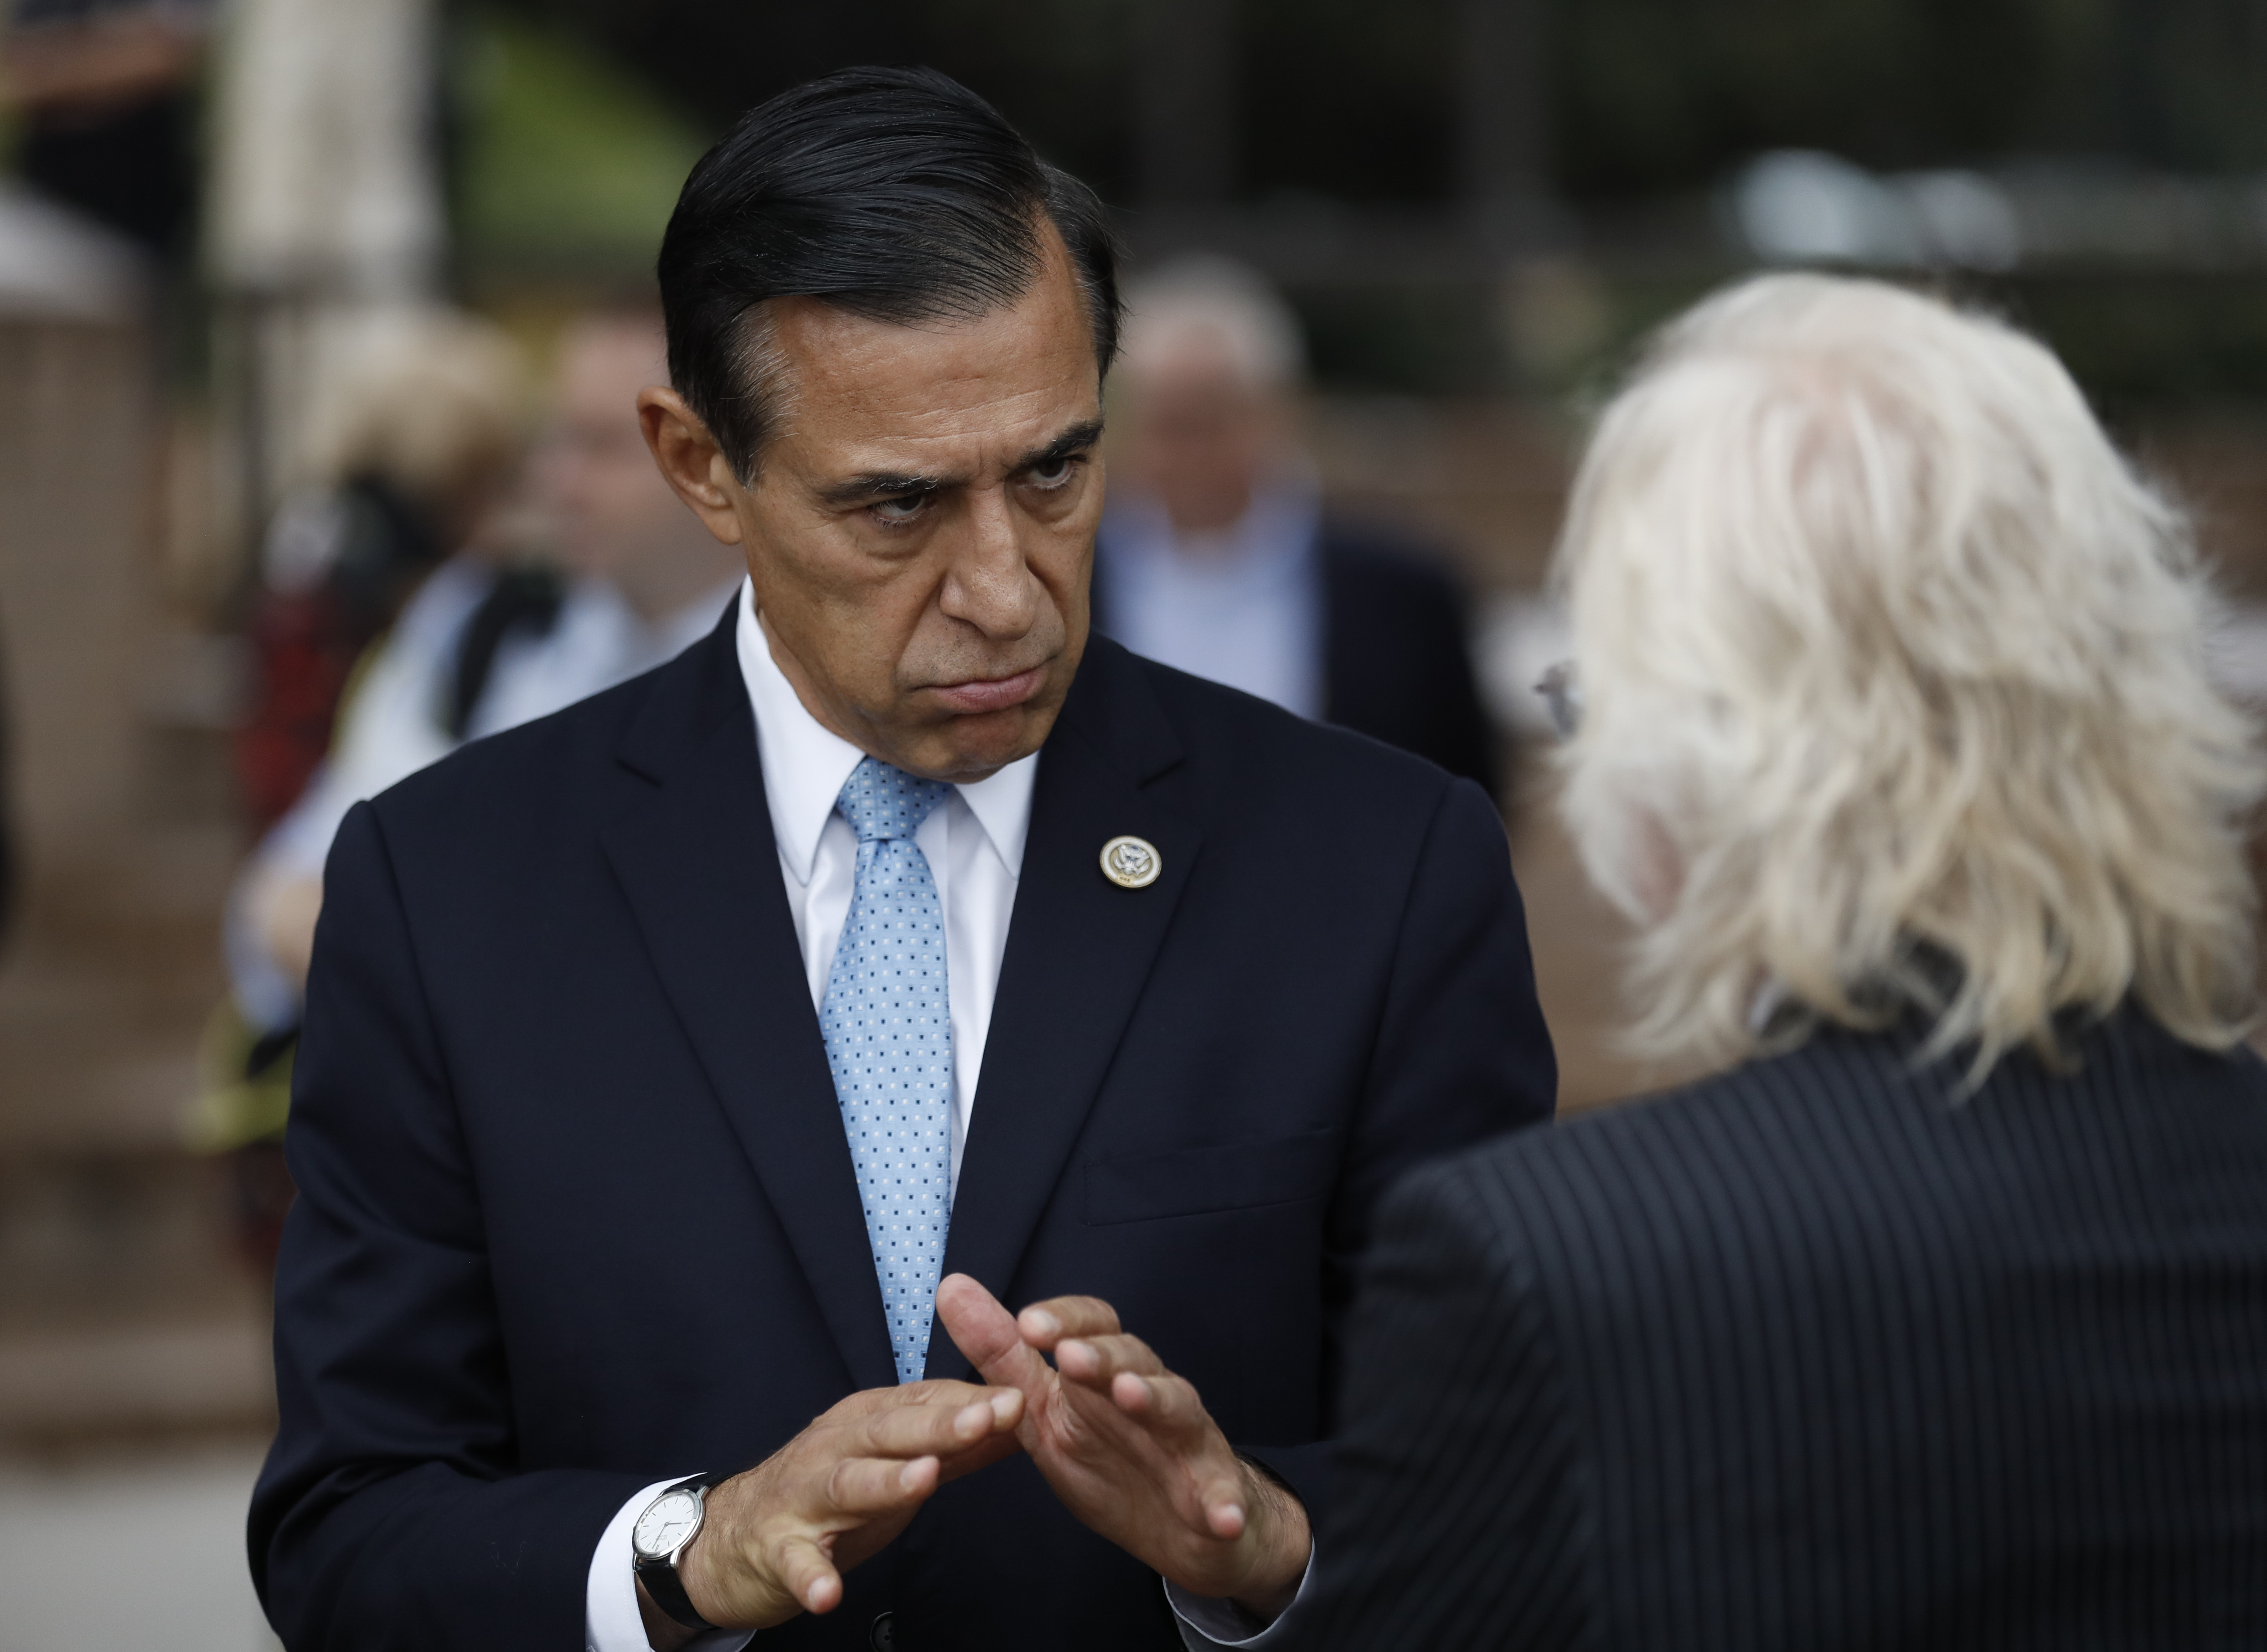 Ex-lawmaker Issa vies for seat of indicted GOP congressman